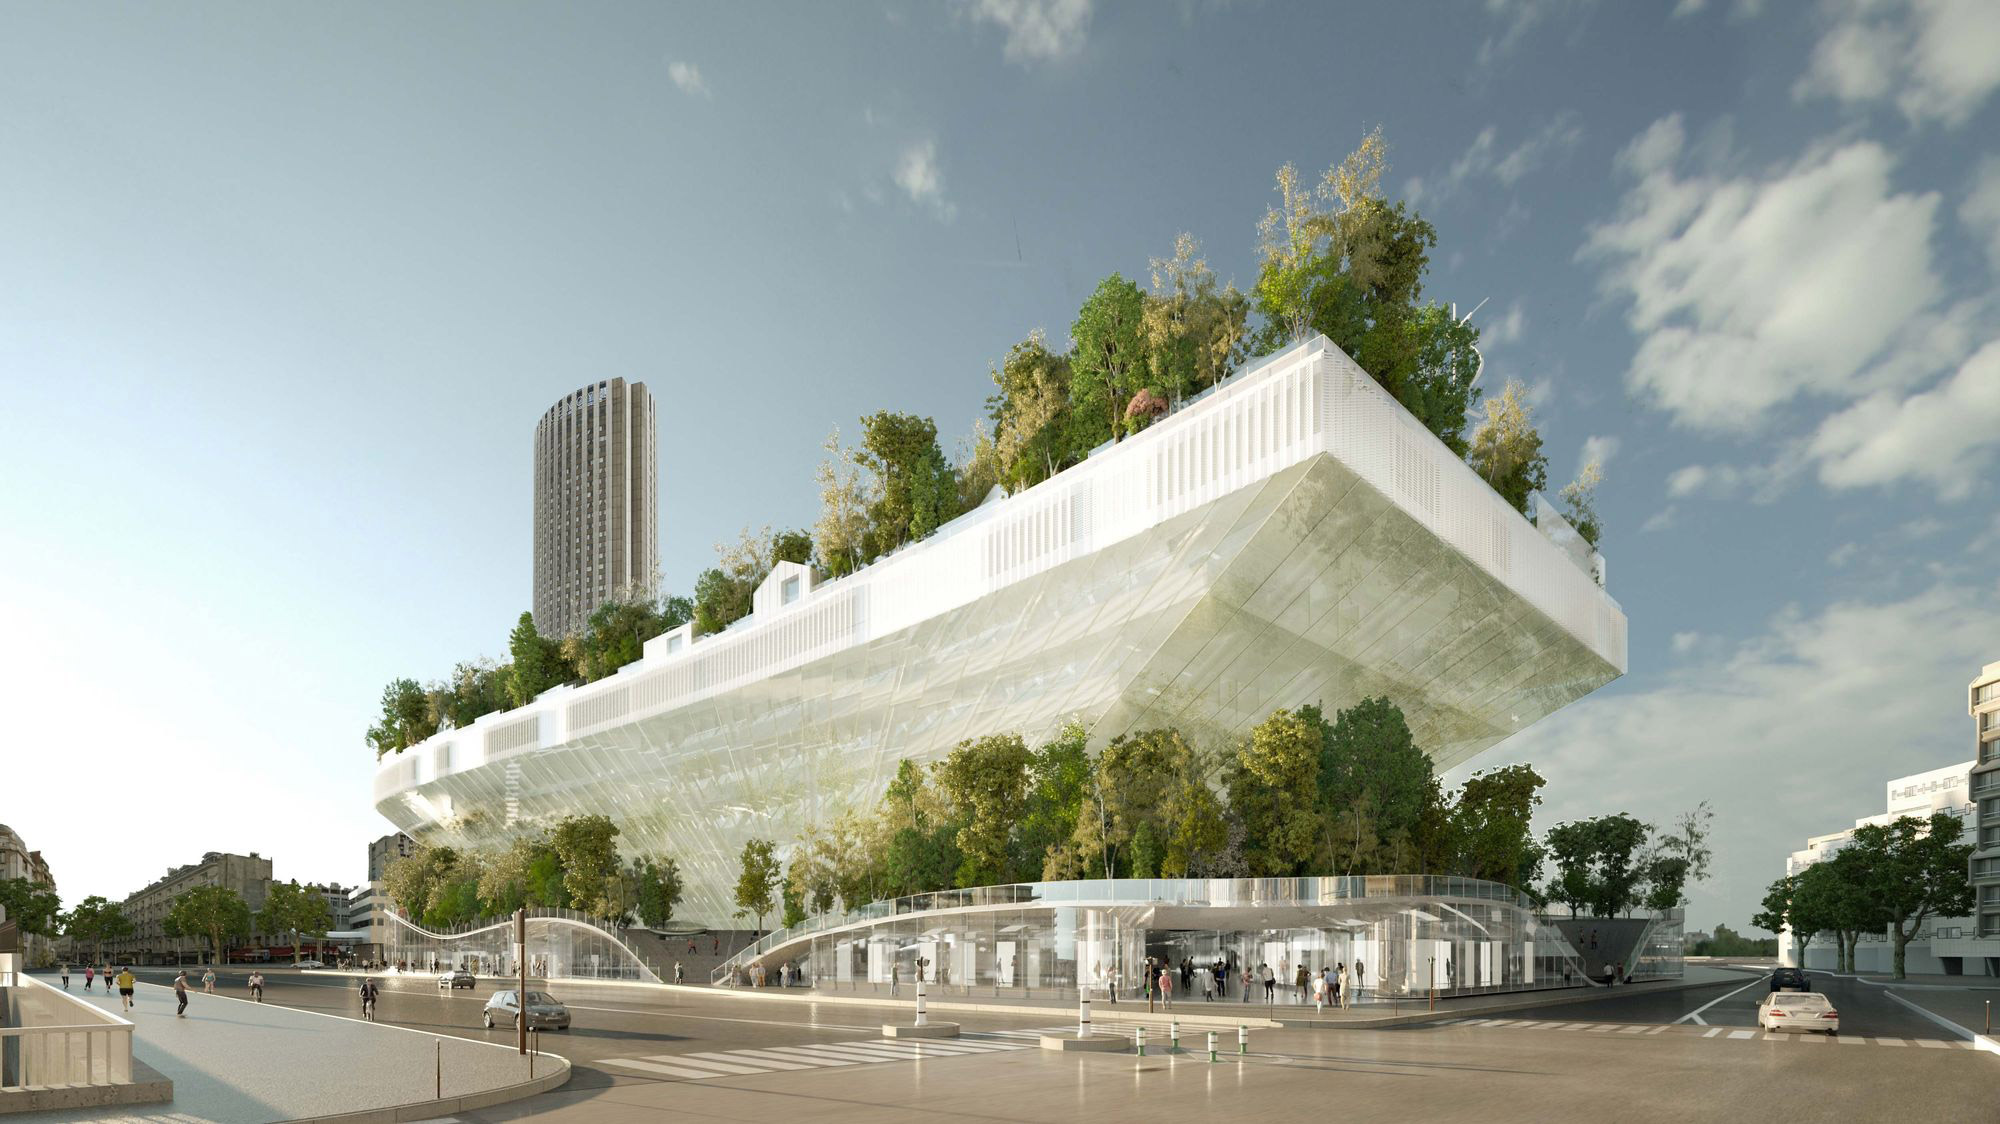 Milles arbres in paris sou fujimoto oxo architectes for Architecte paris